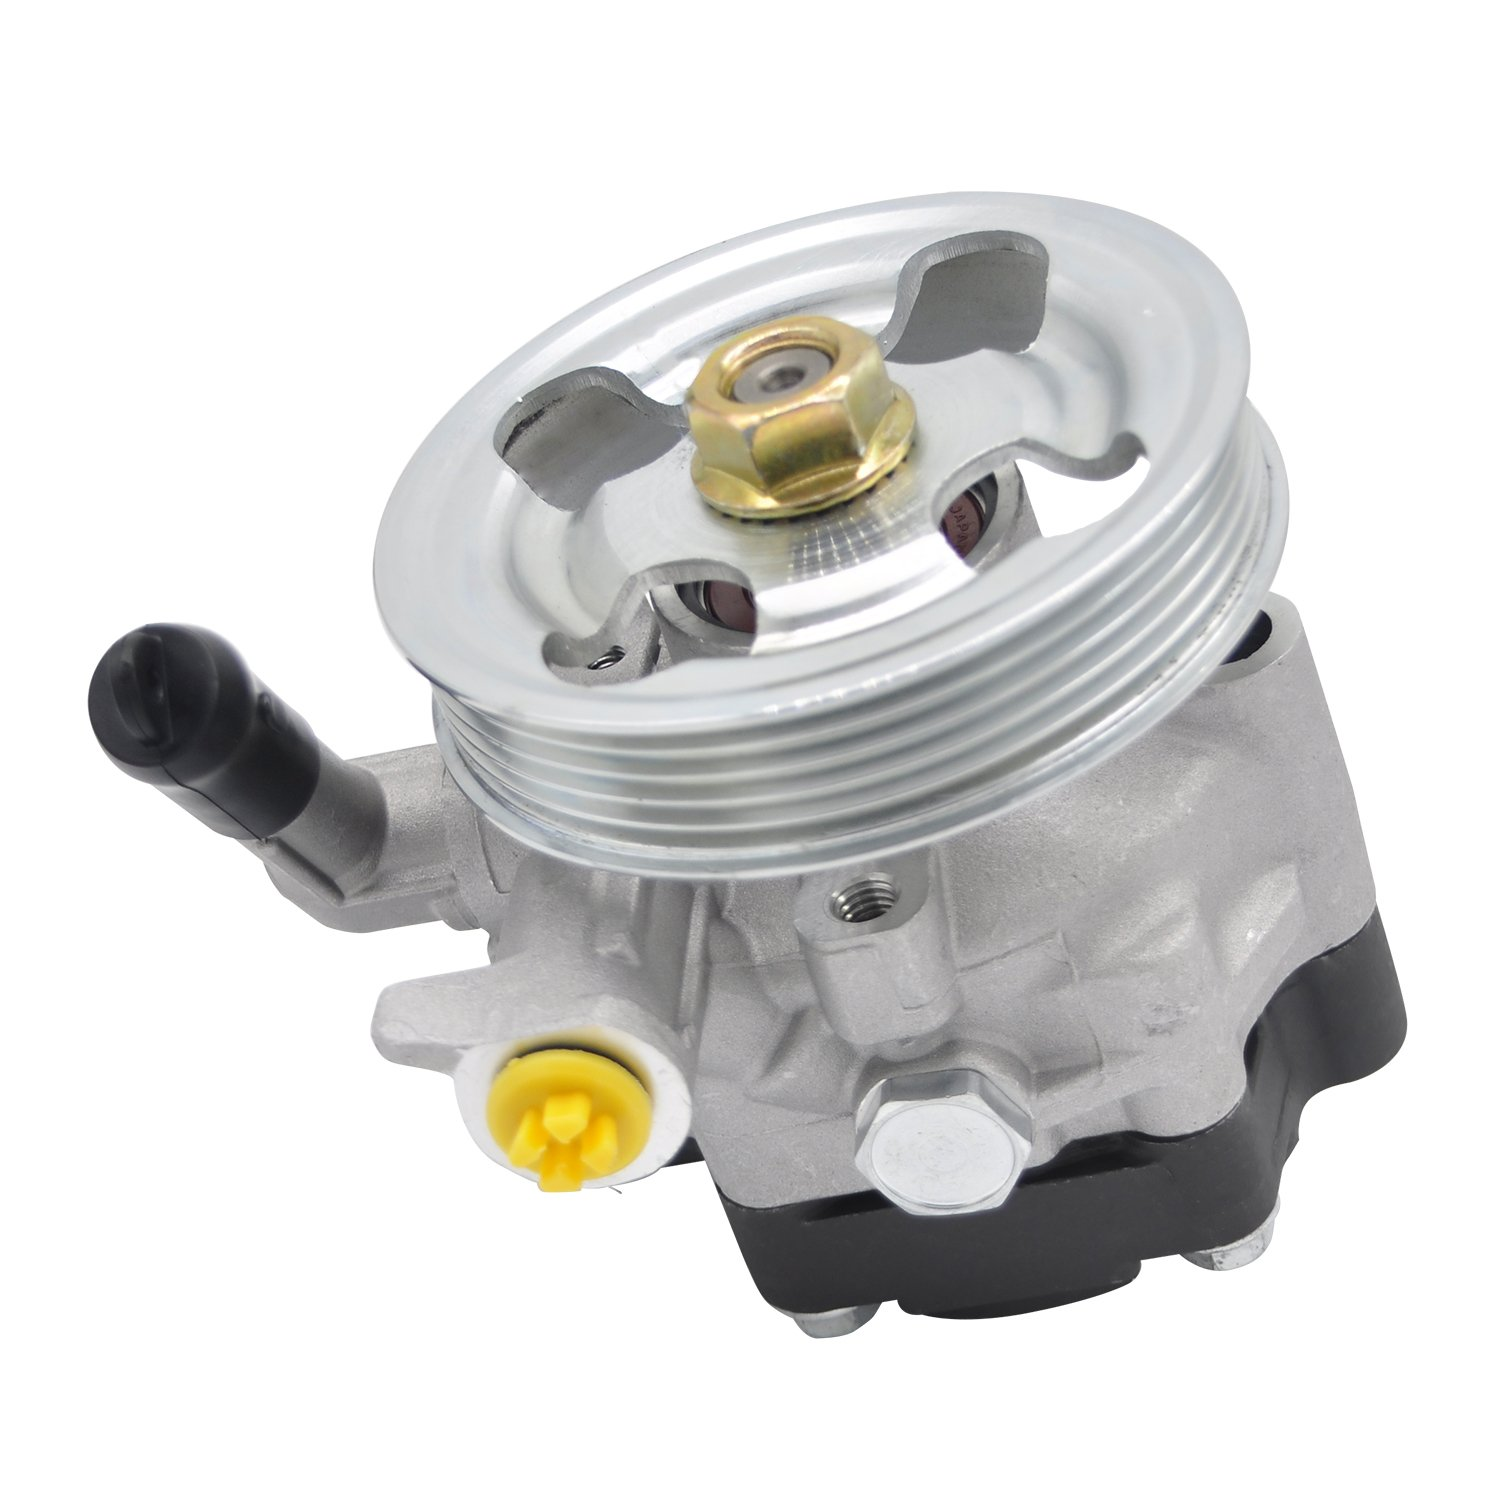 New Power Steering Pump With Pulley 34430AG03B 21-5196, For Subaru IMPREZA 2011/2012/2013 Subaru LEGACY 20052006/2007/2008/2009 Power Steering Pumps (OEM Specifications)